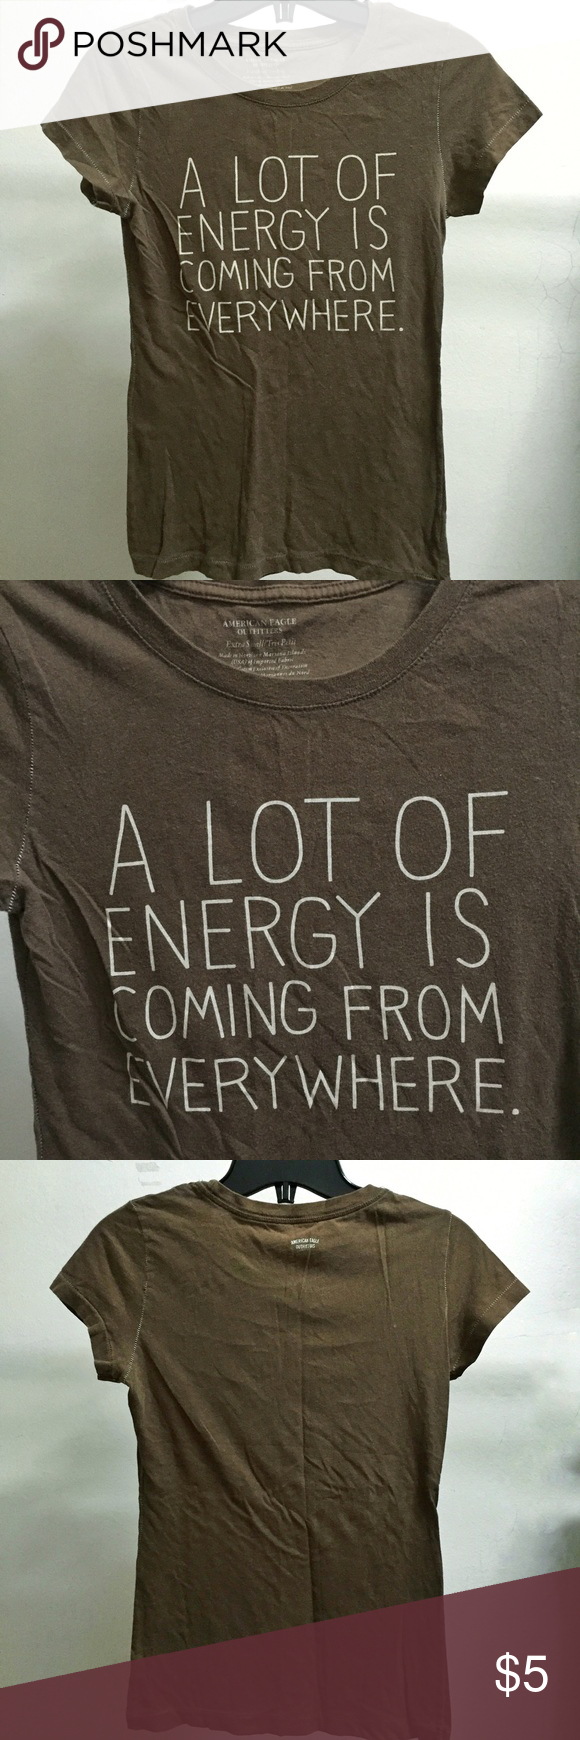 Selling this AE A Lot Of Energy Is Coming From Everywhere Shirt on Poshmark! My username is: refineselection. #shopmycloset #poshmark #fashion #shopping #style #forsale #American Eagle Outfitters #Tops